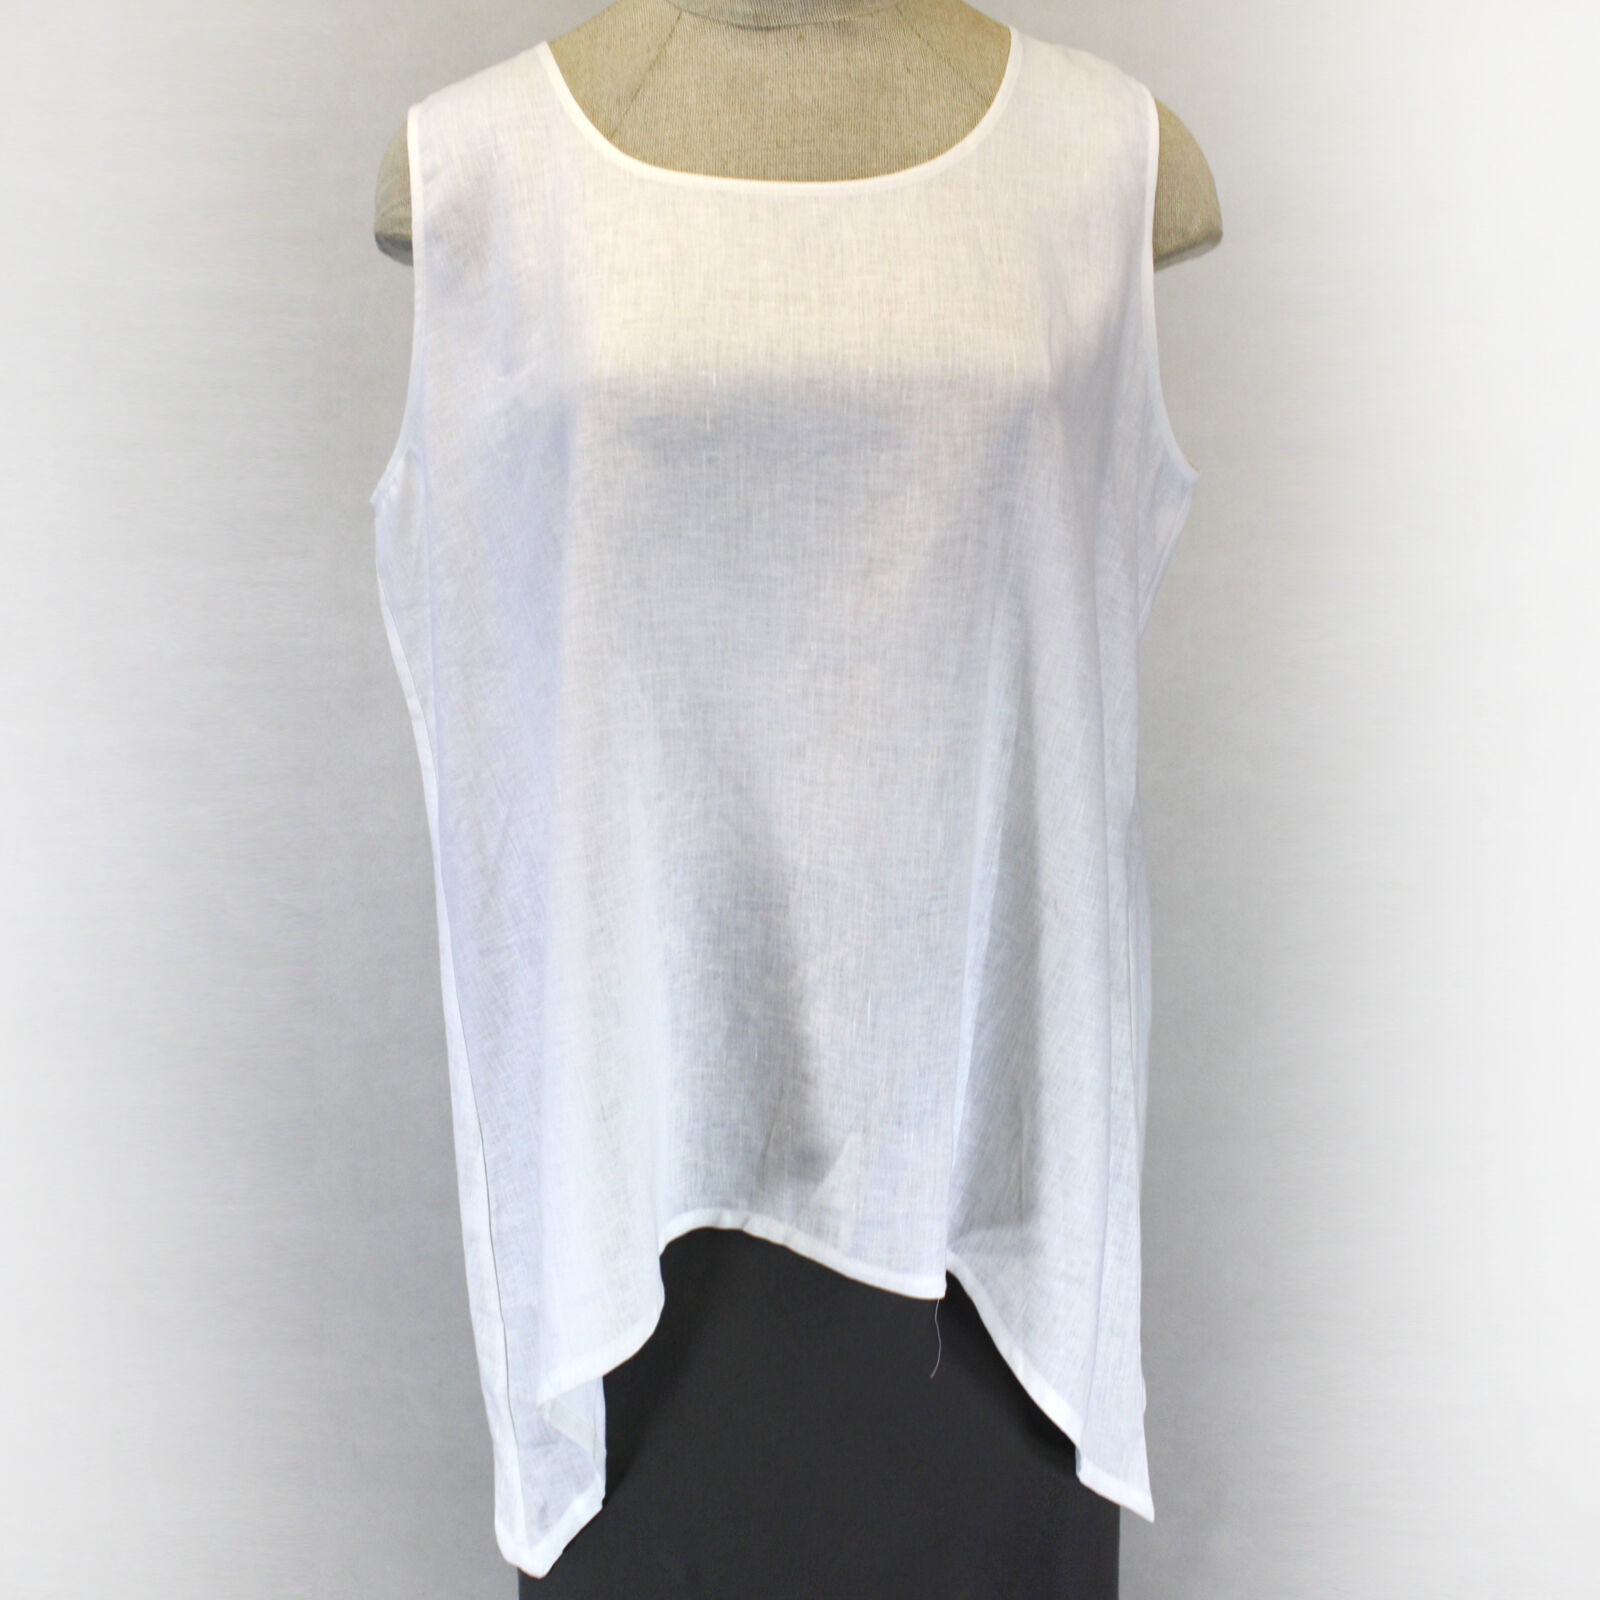 NEW Chalet et Ceci Plus Size White 100% Linen Tunic Blouse 3X Made in USA